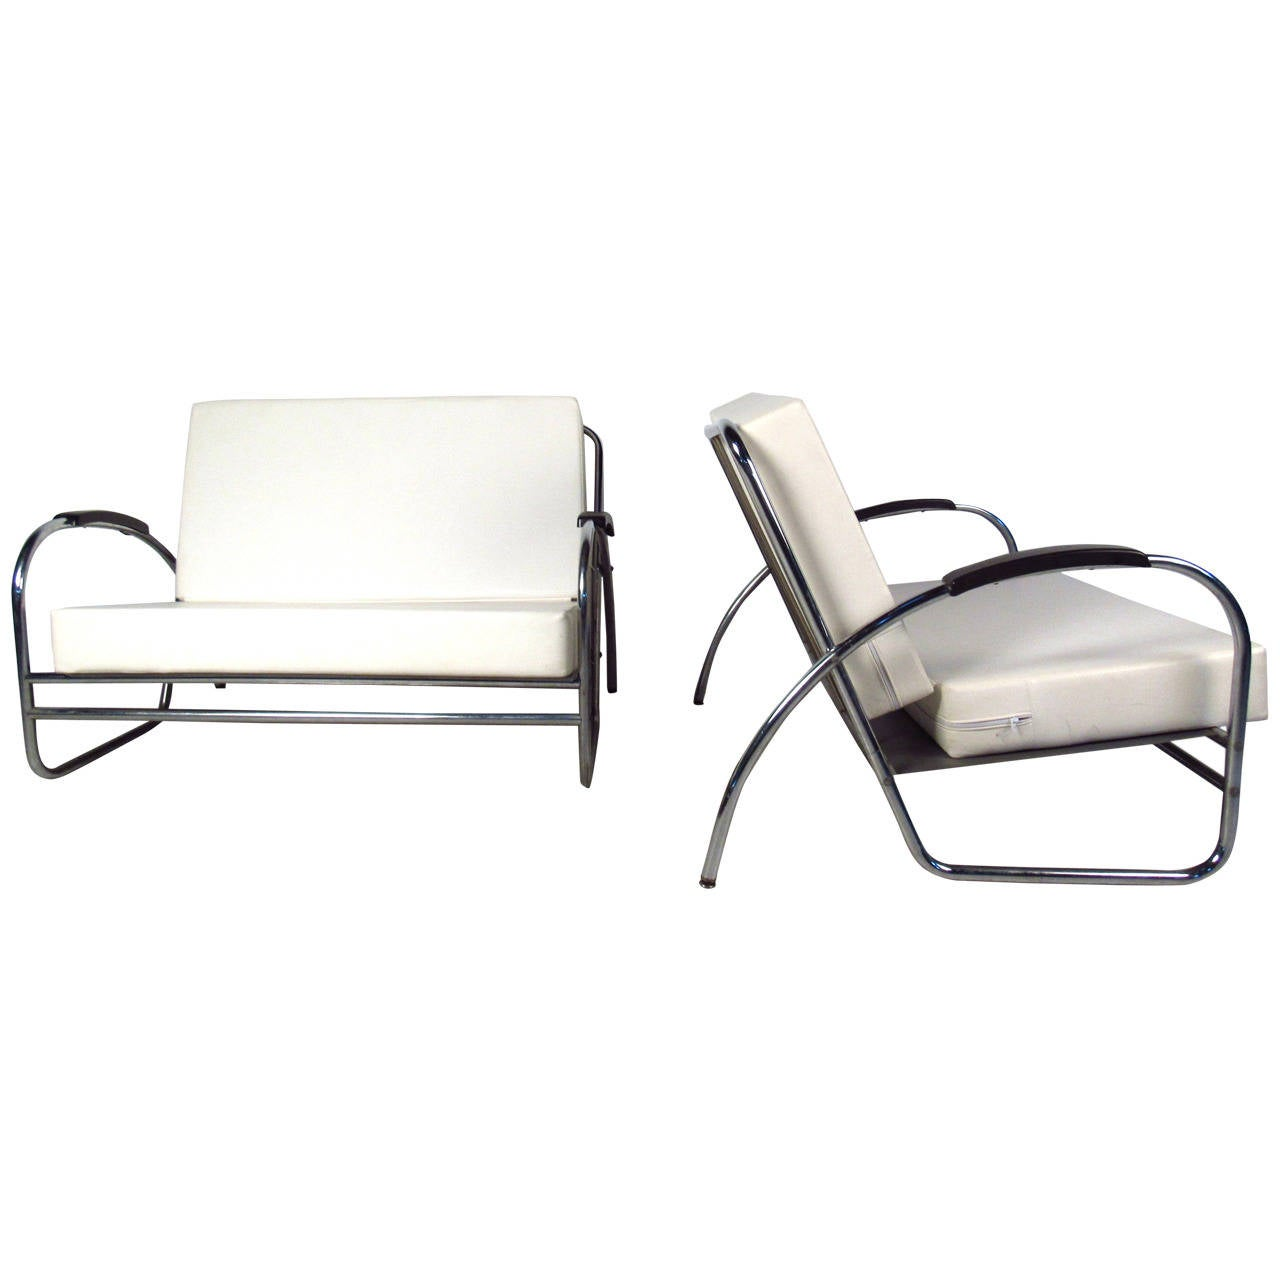 Royal Metal Industrial Lounge Chairs For Sale at 1stdibs